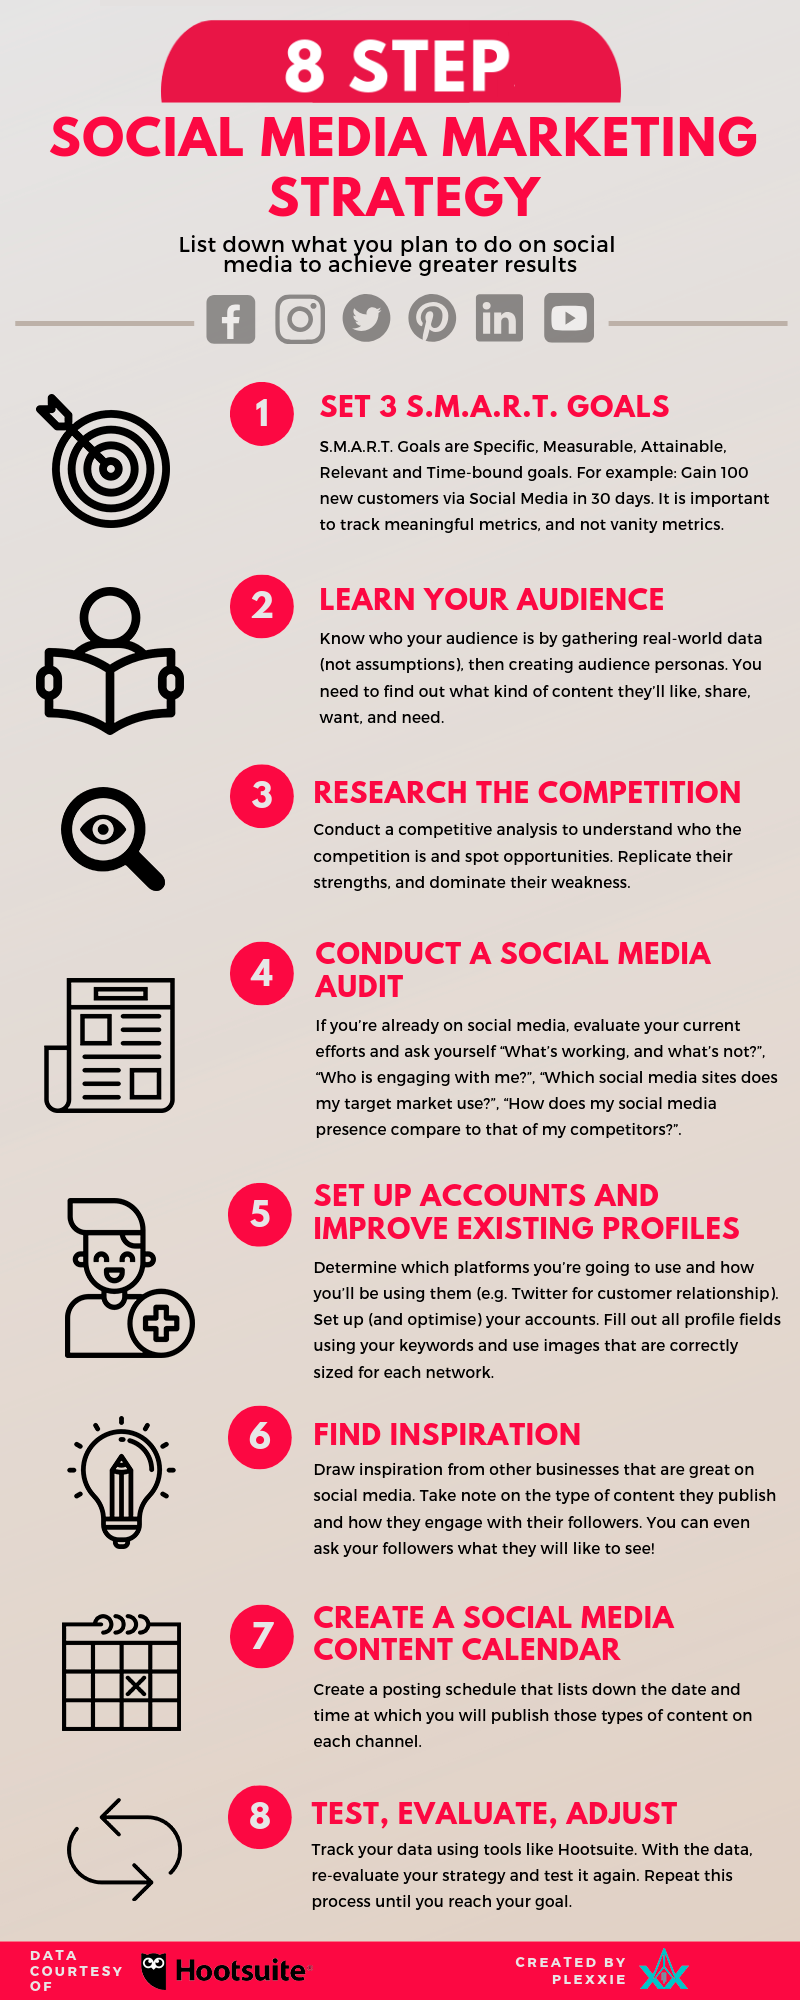 8 Steps to a More Effective Social Media Marketing Strategy Infographic Image